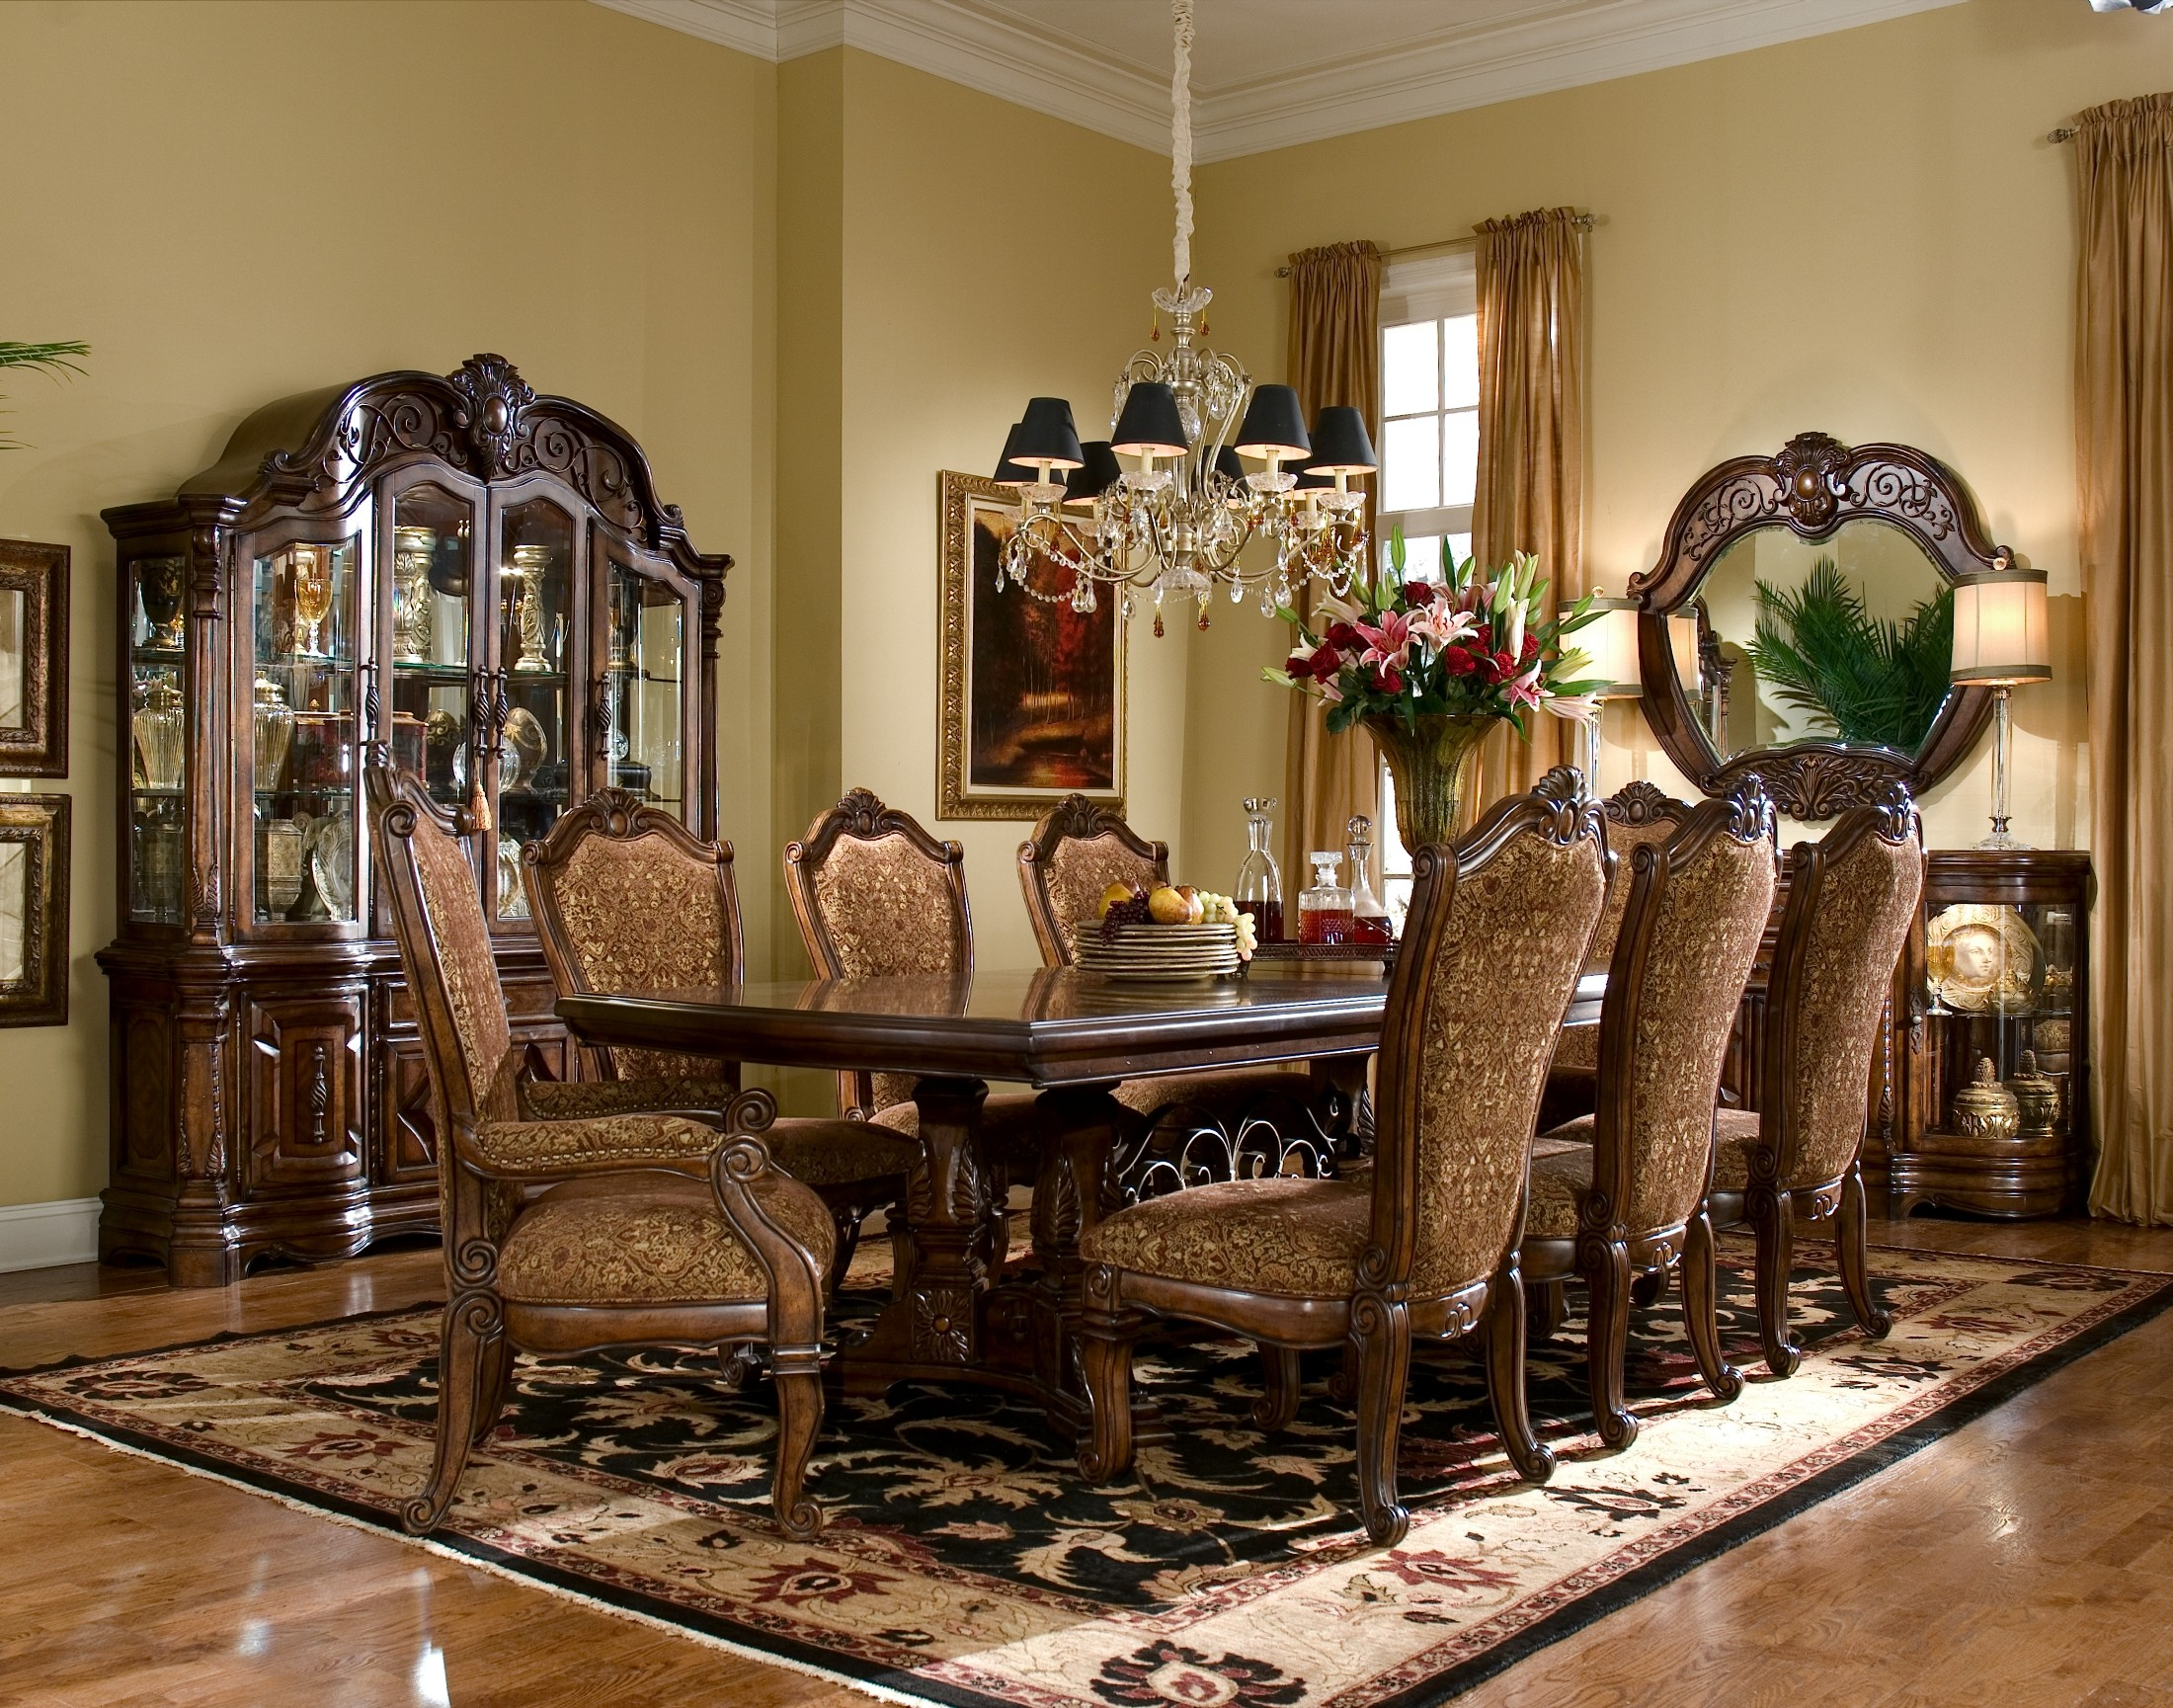 diningset living aico chateaubeauvaiscurio furniture livings curio chateua collection chateau room beauvais